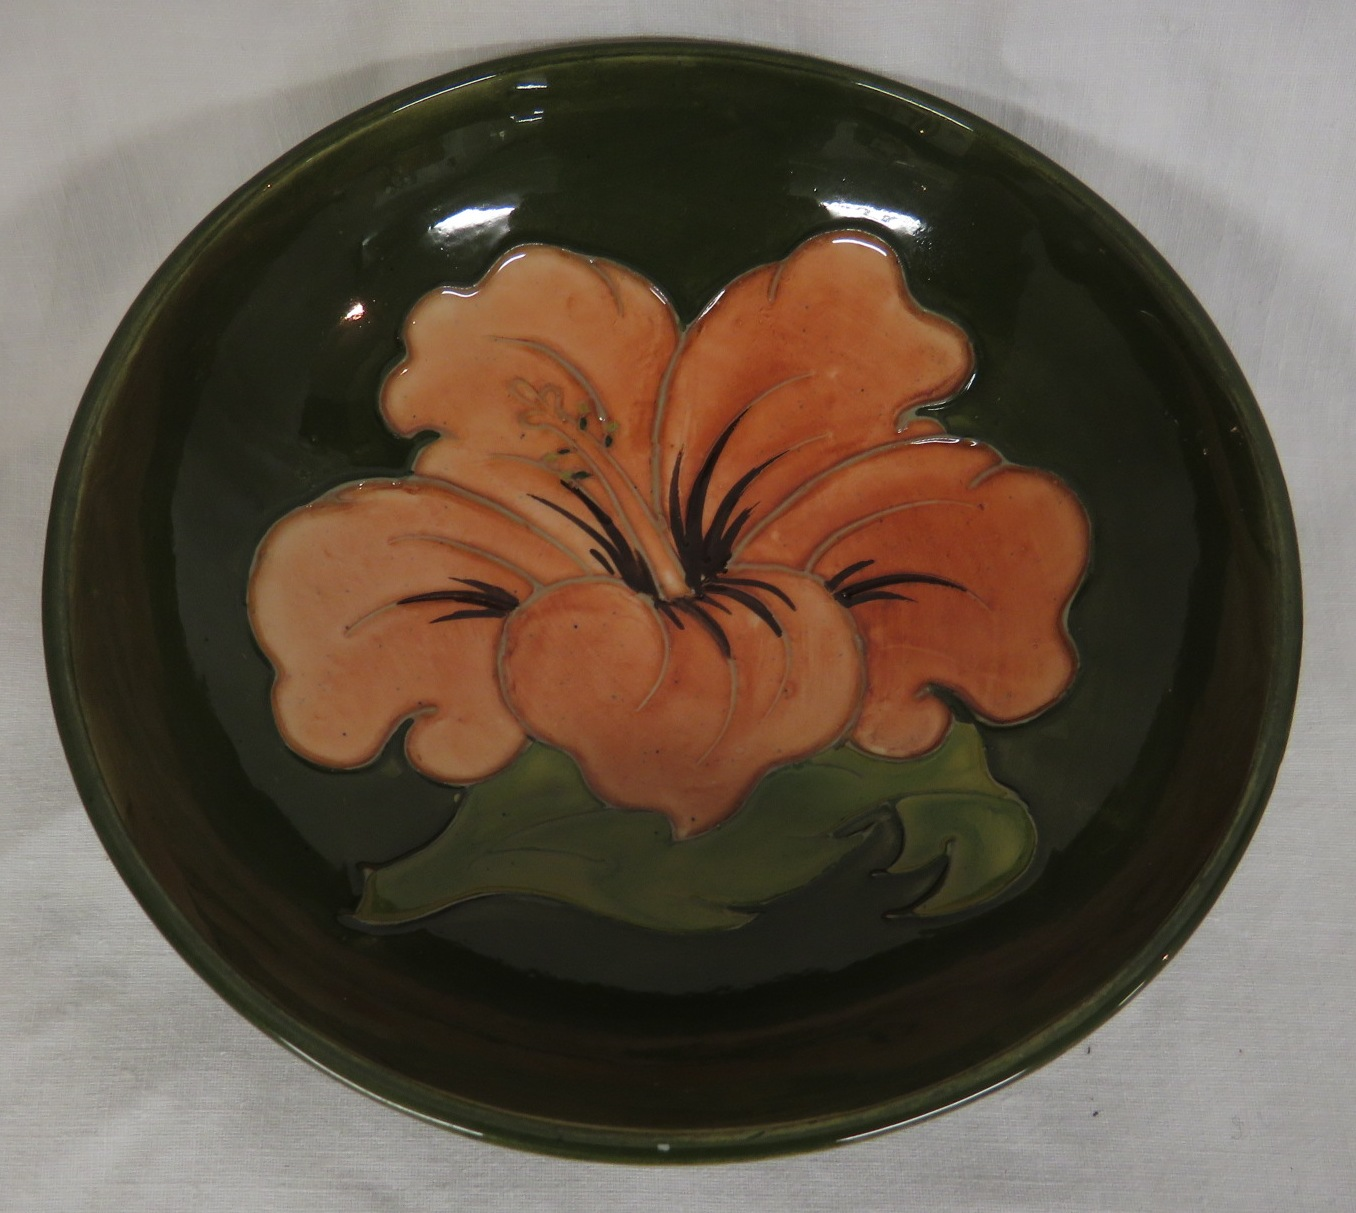 Lot 93 - Moorcroft pottery hibiscus bowl, green ground with pink flower, height 5cm, diameter 14cm, the